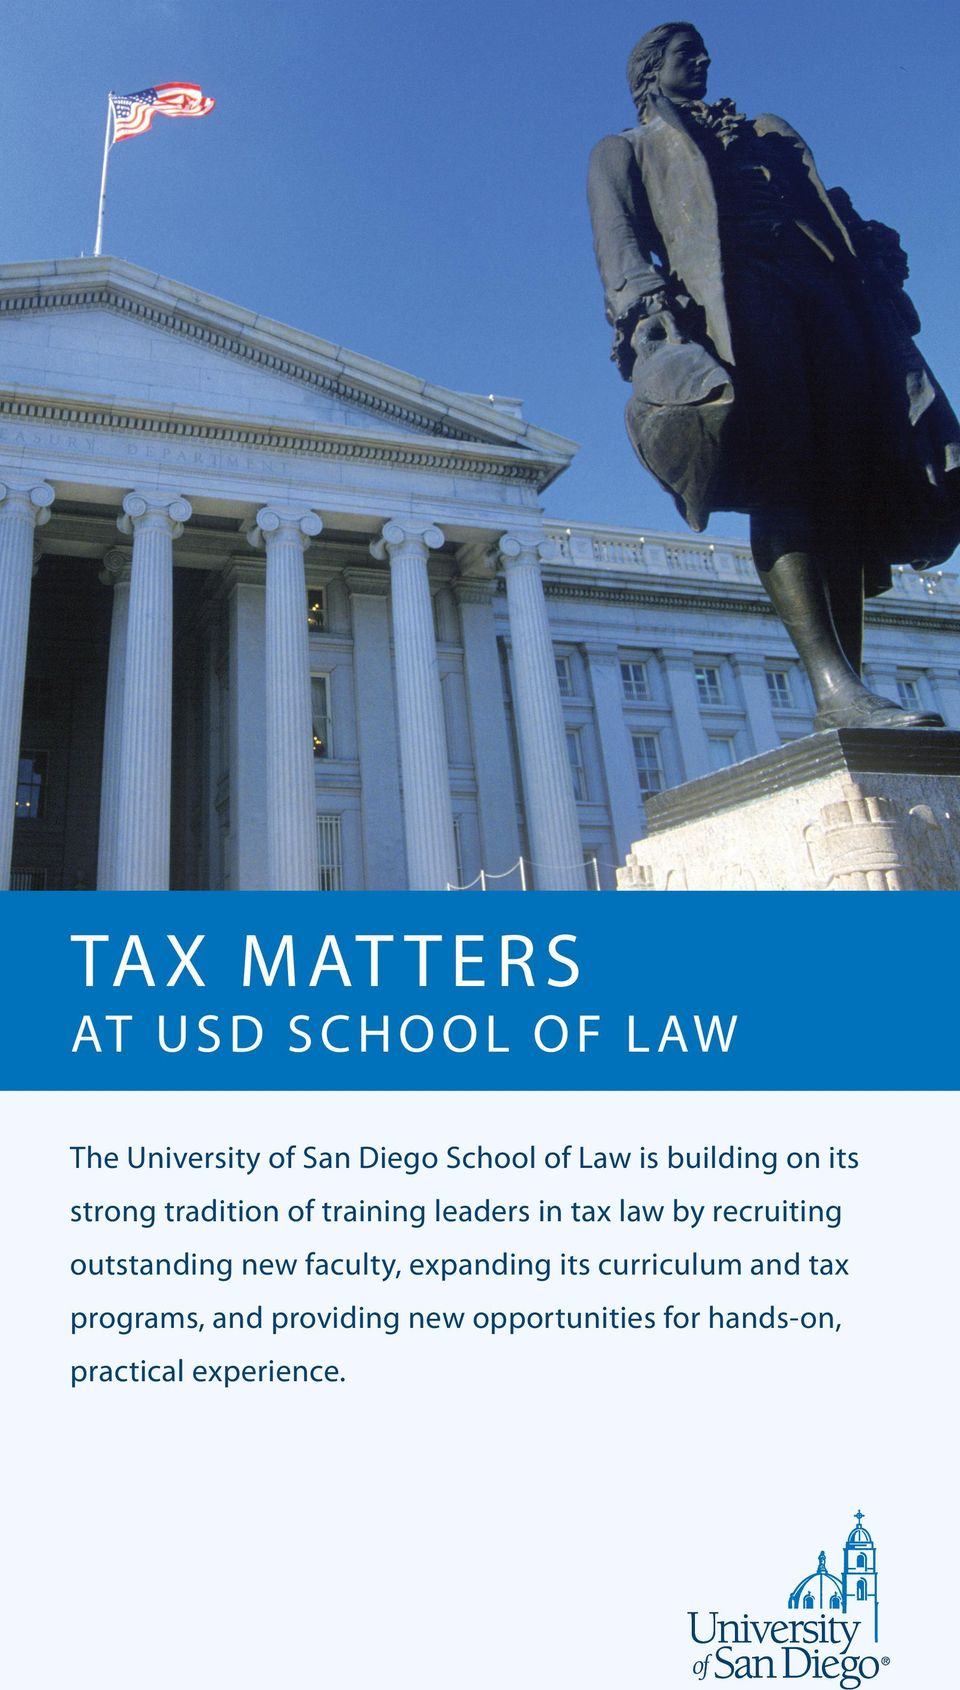 tax law by recruiting outstanding new faculty, expanding its curriculum and